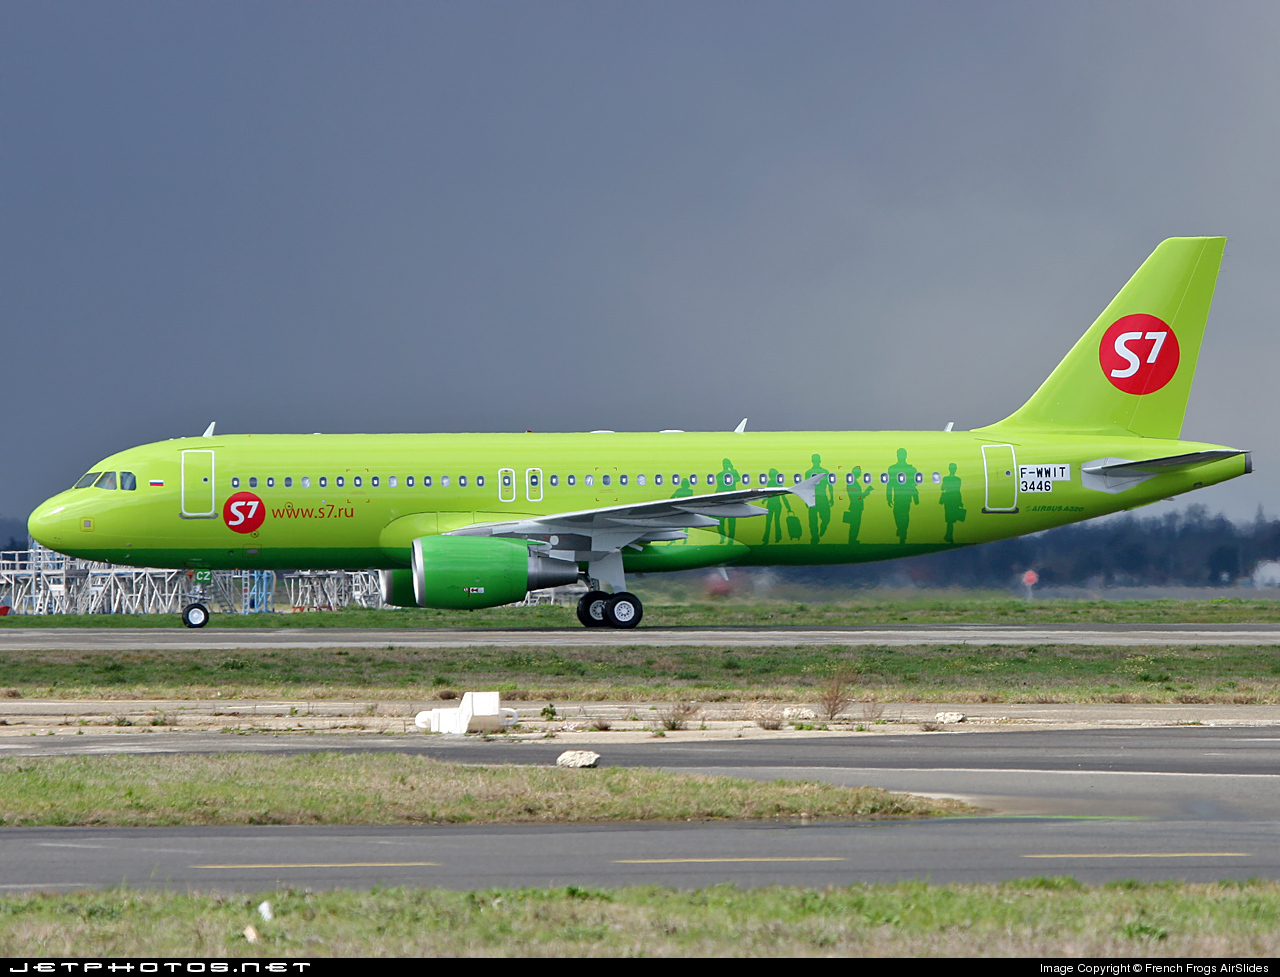 F-WWIT - Airbus A320-214 - S7 Airlines